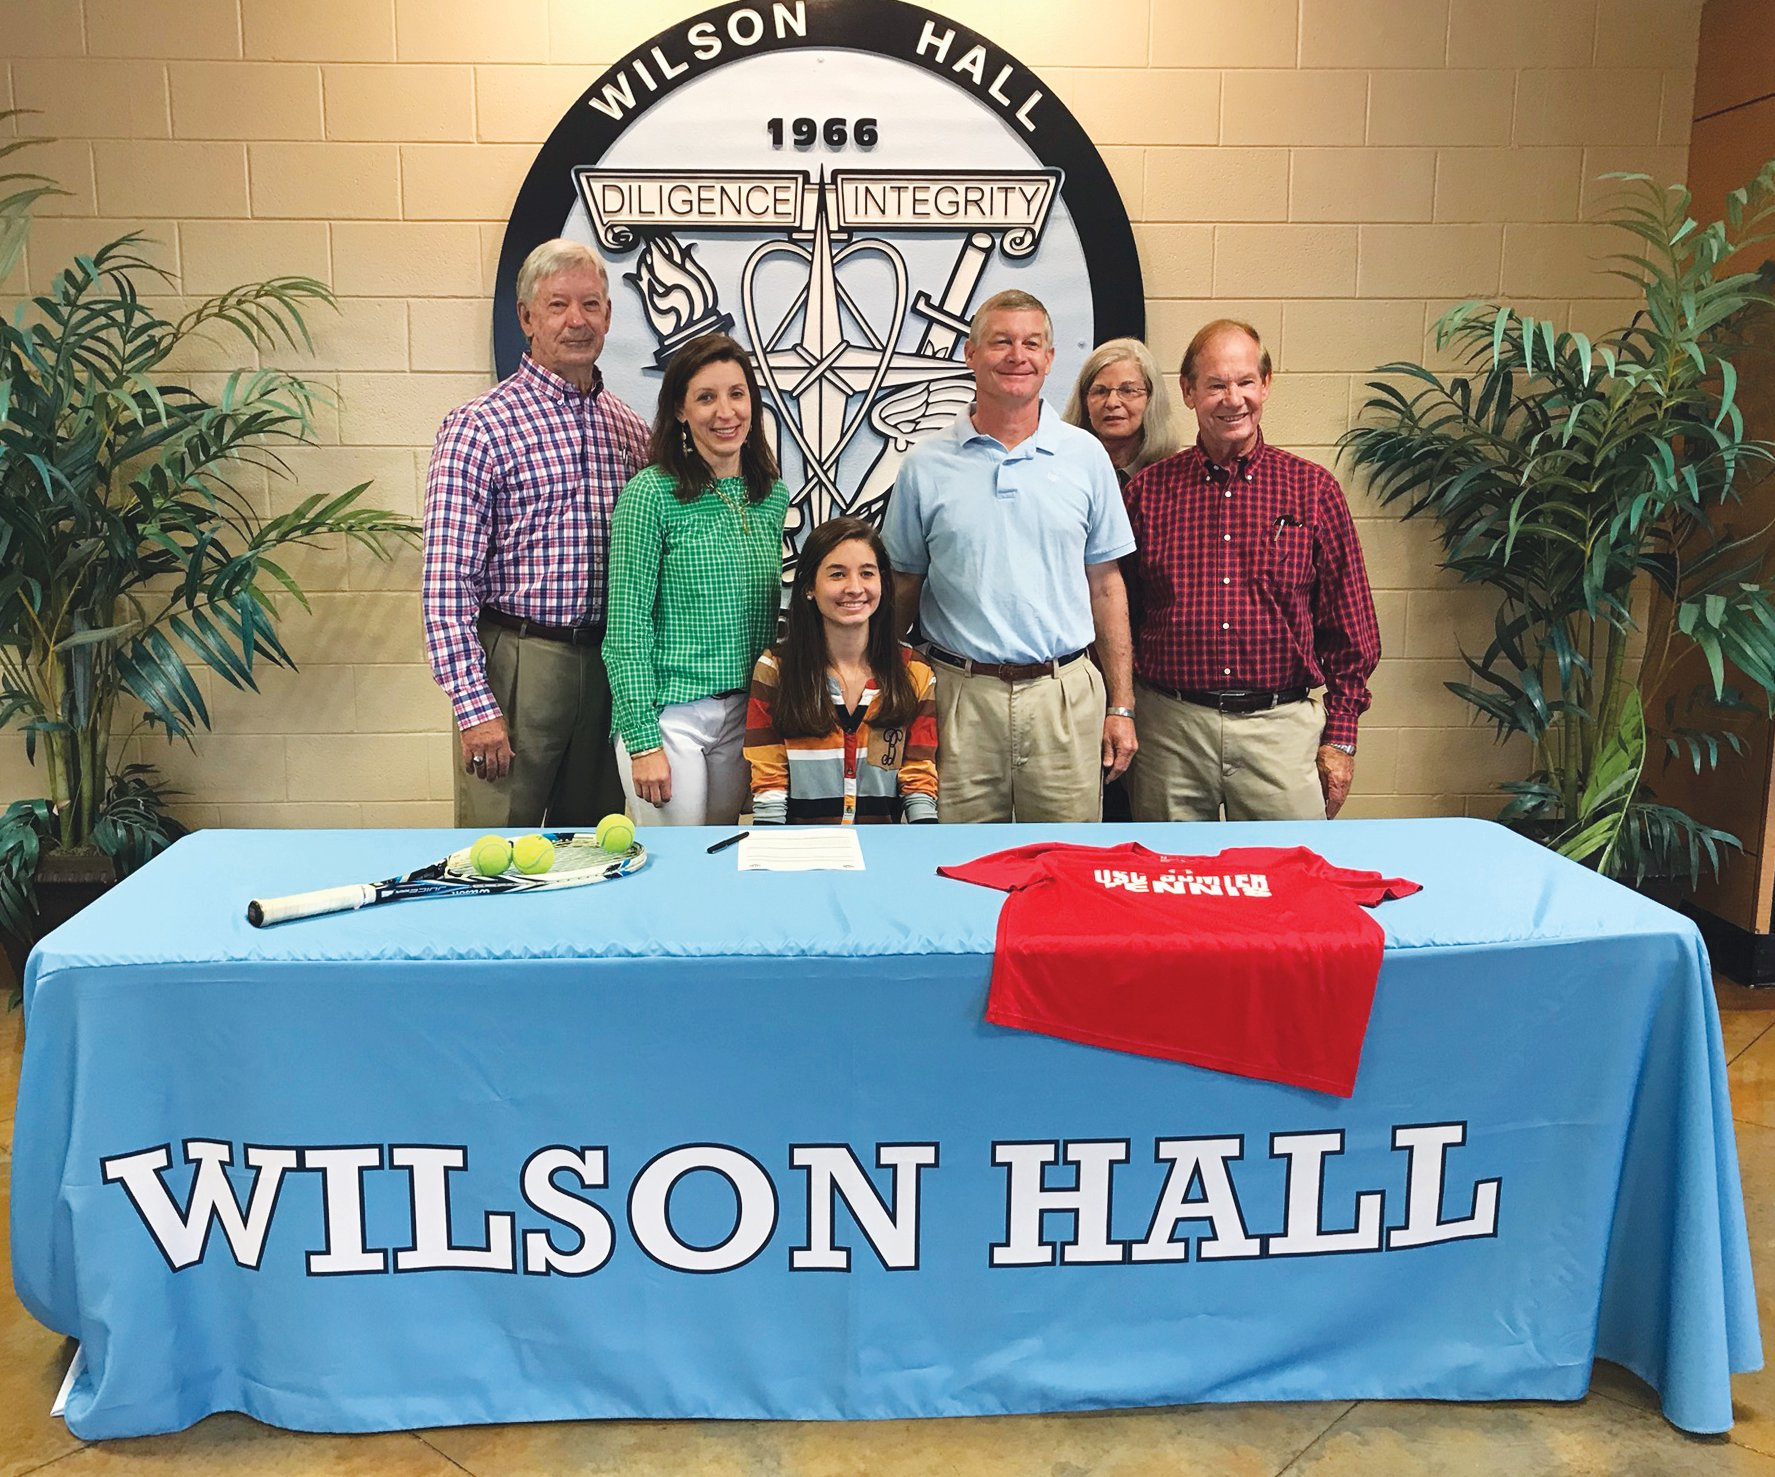 Wilson Hall's Emily Anne Beasley, seated, has signed to play tennis with the University of South Carolina Sumter. Pictured with Beasley, left to right, are grandfather David Branham, mother Mandy Beasley, father Chad Beasley, grandmother Rhonda Beasley and grandfather Arthur Beasley.